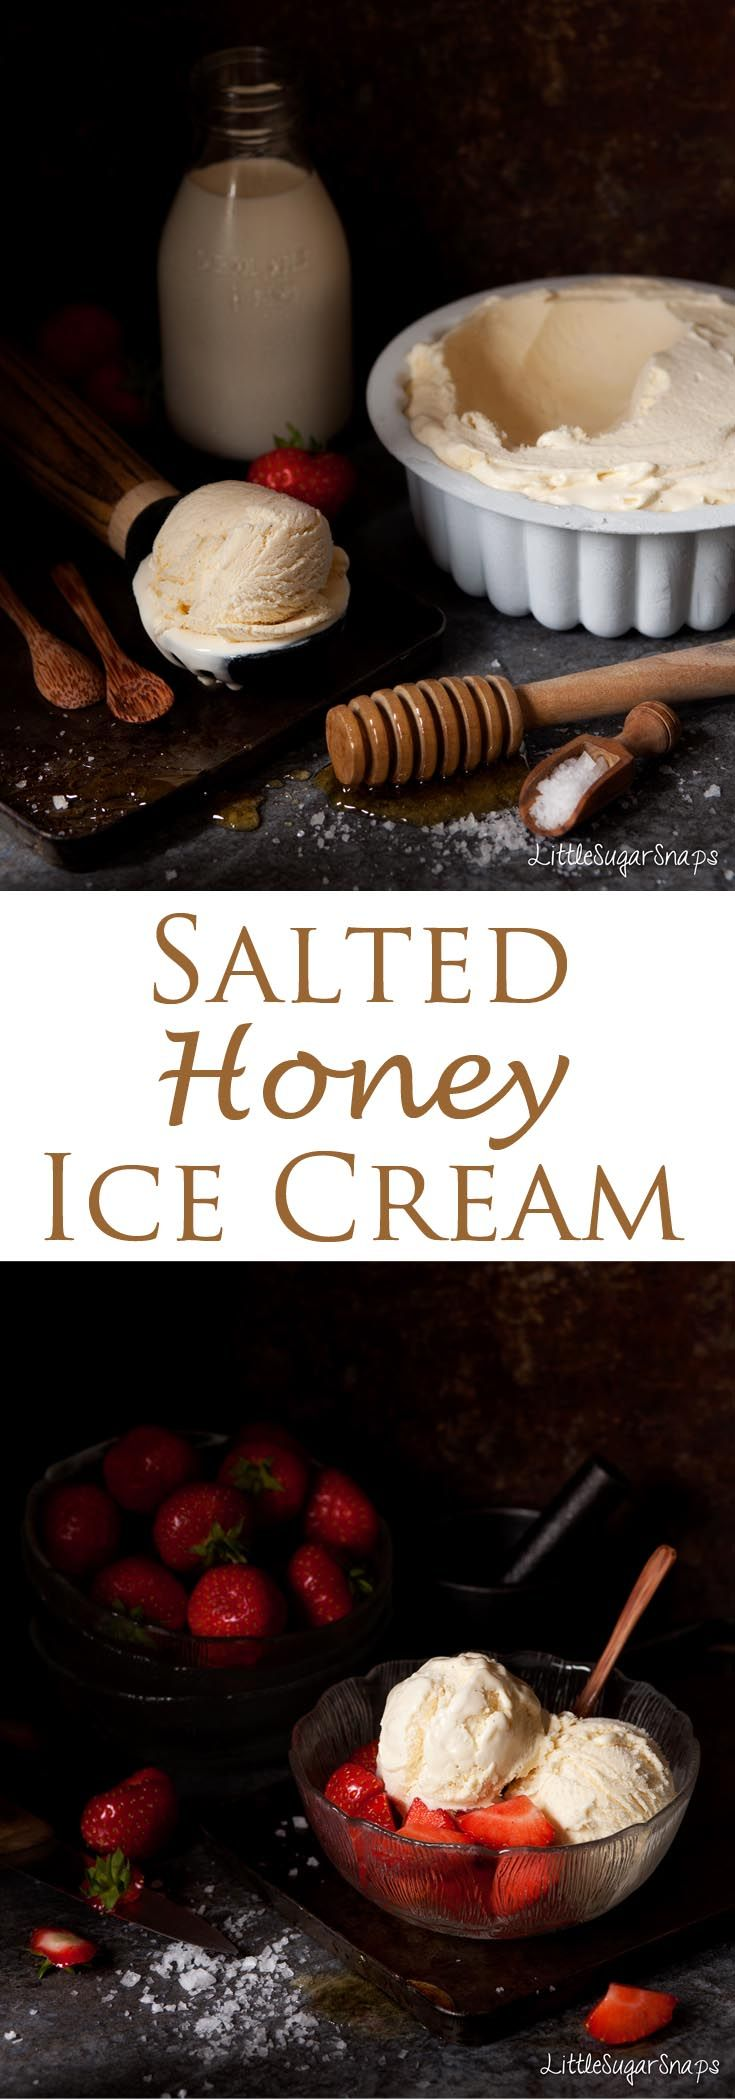 Salted Honey Ice Cream combines mellow sweetness with a subtle twang of salt. It can be scooped straight from the freezer and it is exceptionally creamy. Great with strawberries.